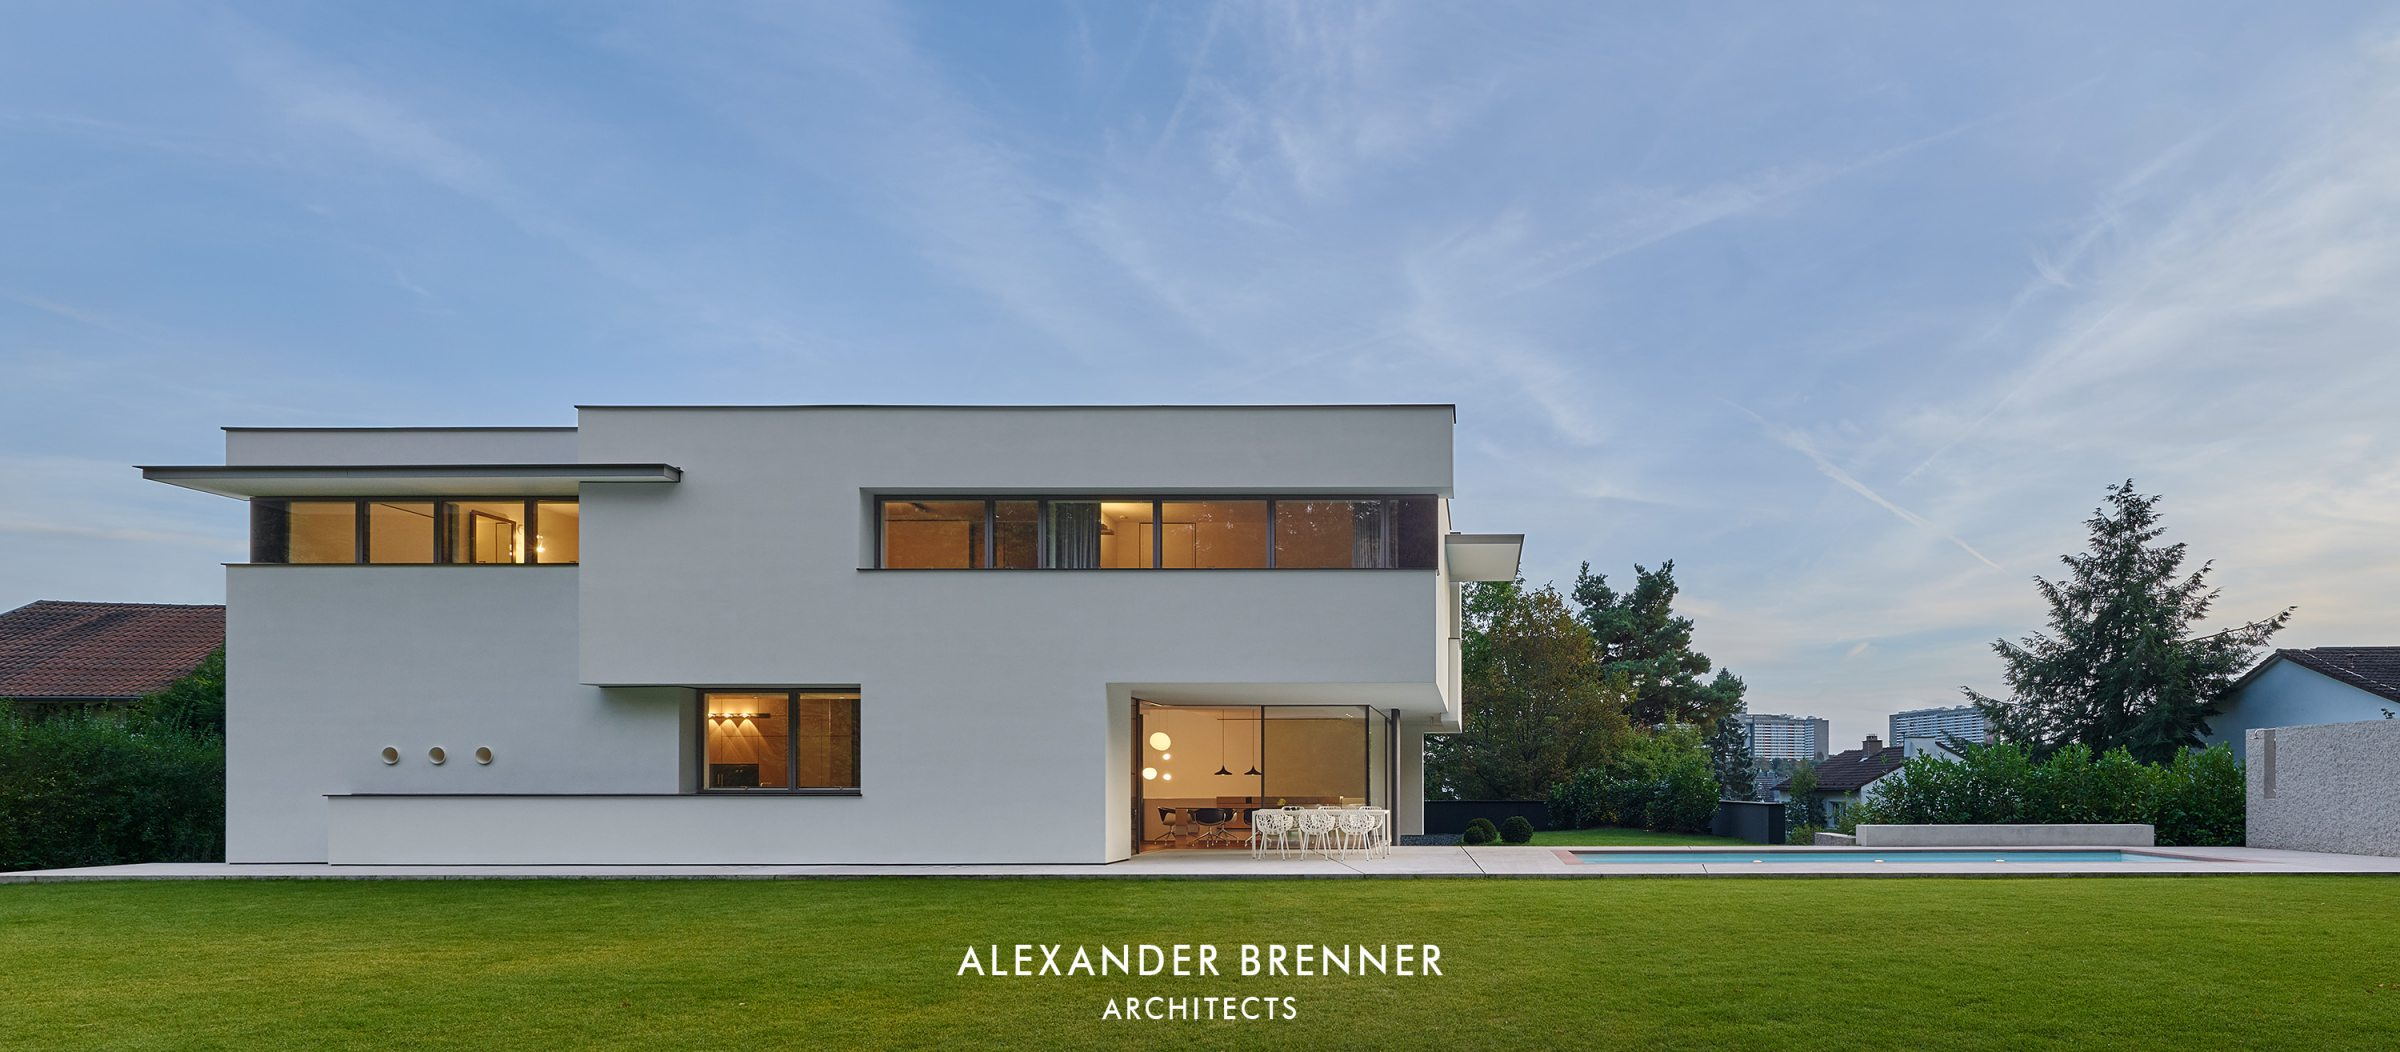 Haus Am Wald Alexander Brenner Architects Villas And Houses